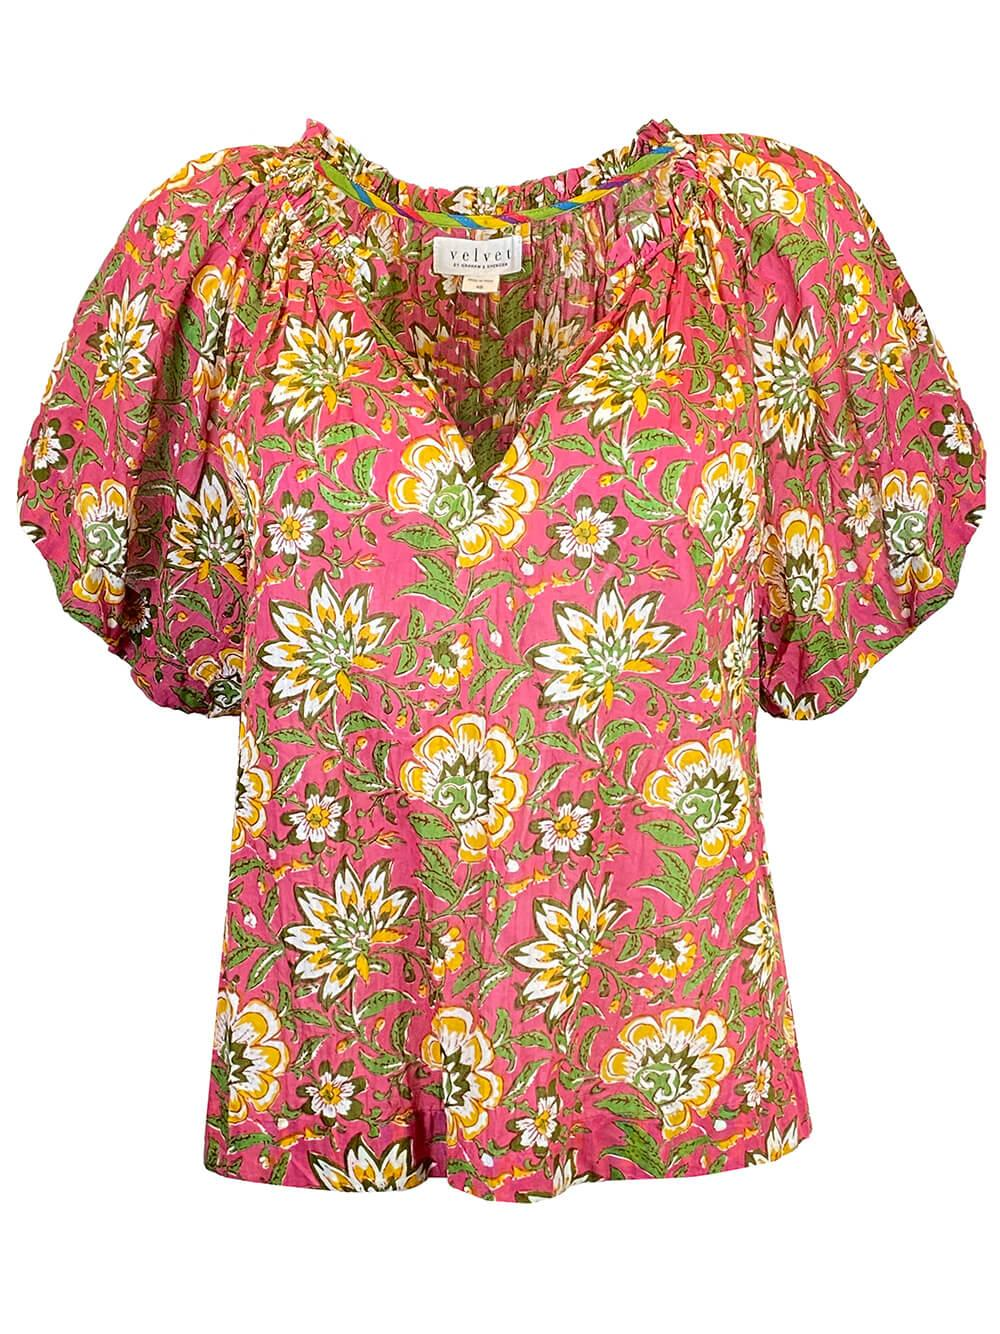 Printed Floral Short Sleeve Top